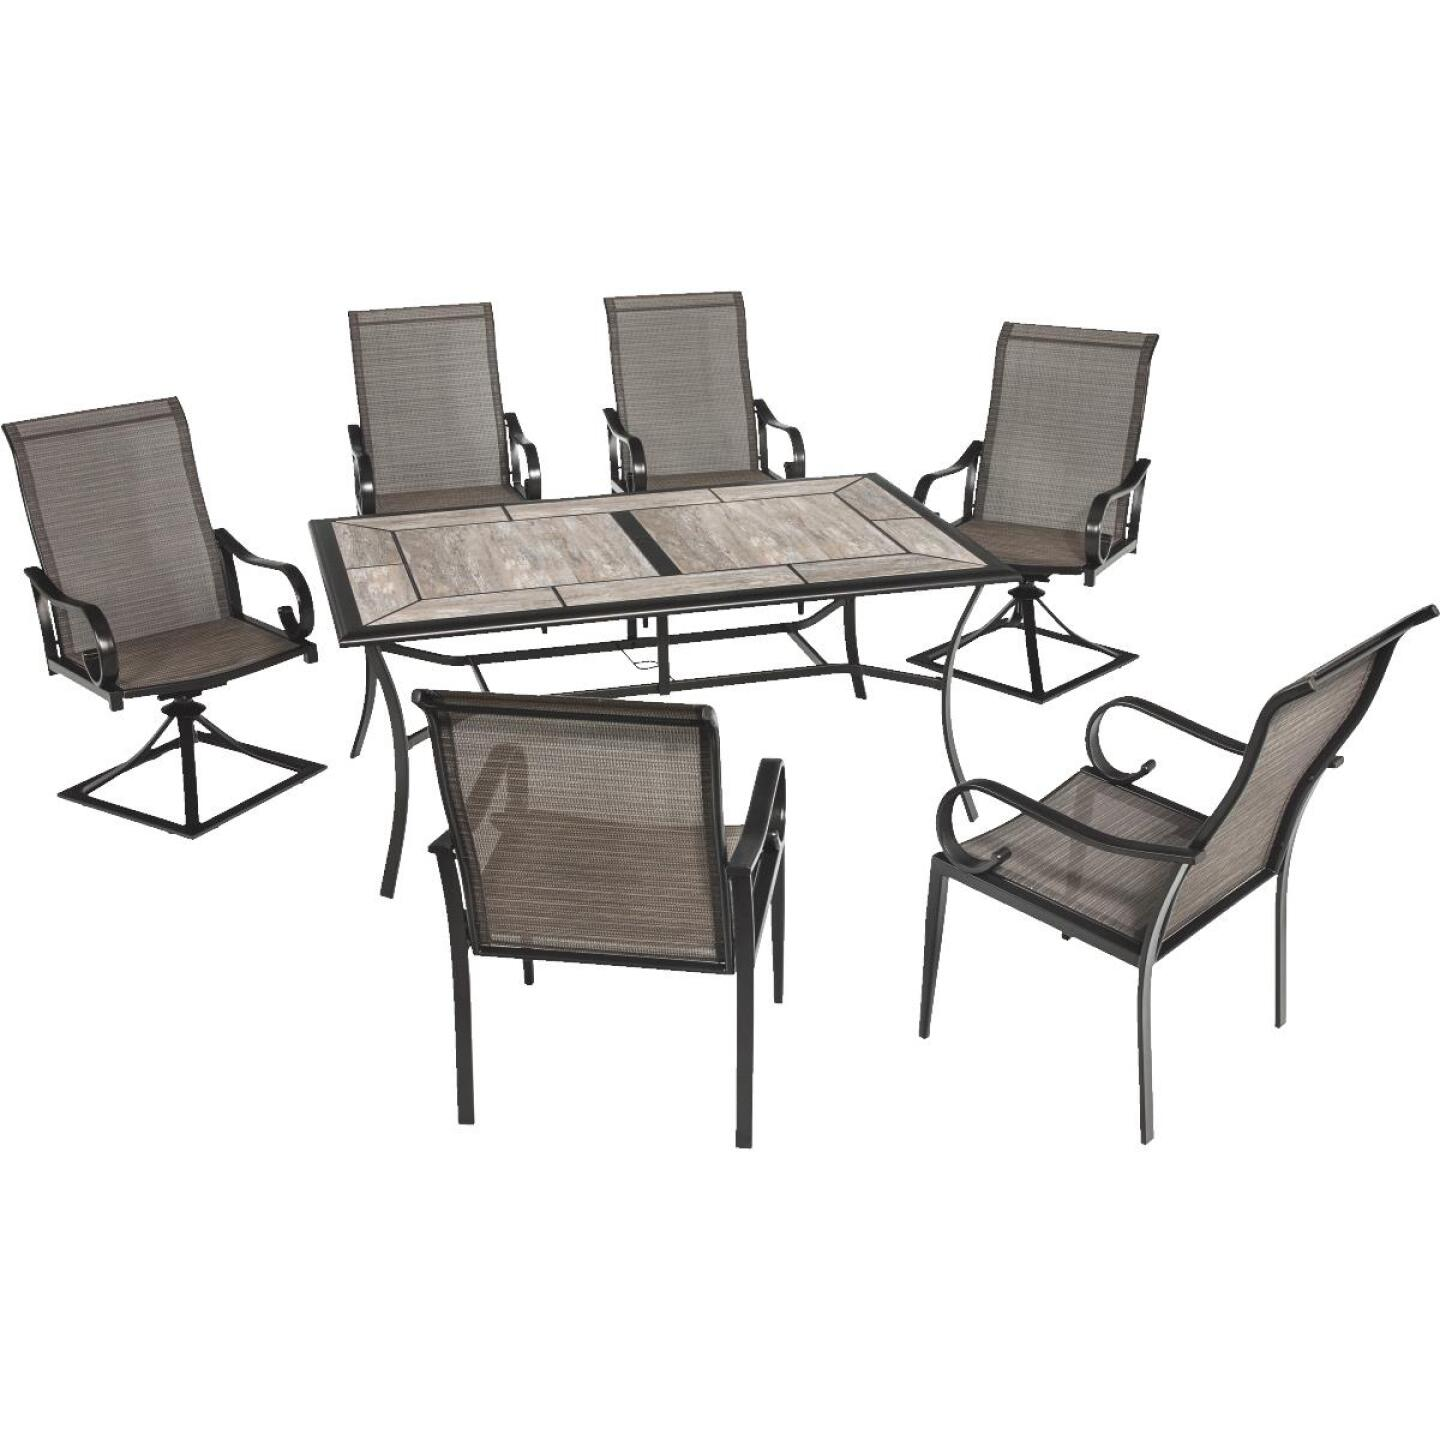 Outdoor Expressions Berkshire 7-Piece Dining Set Image 10